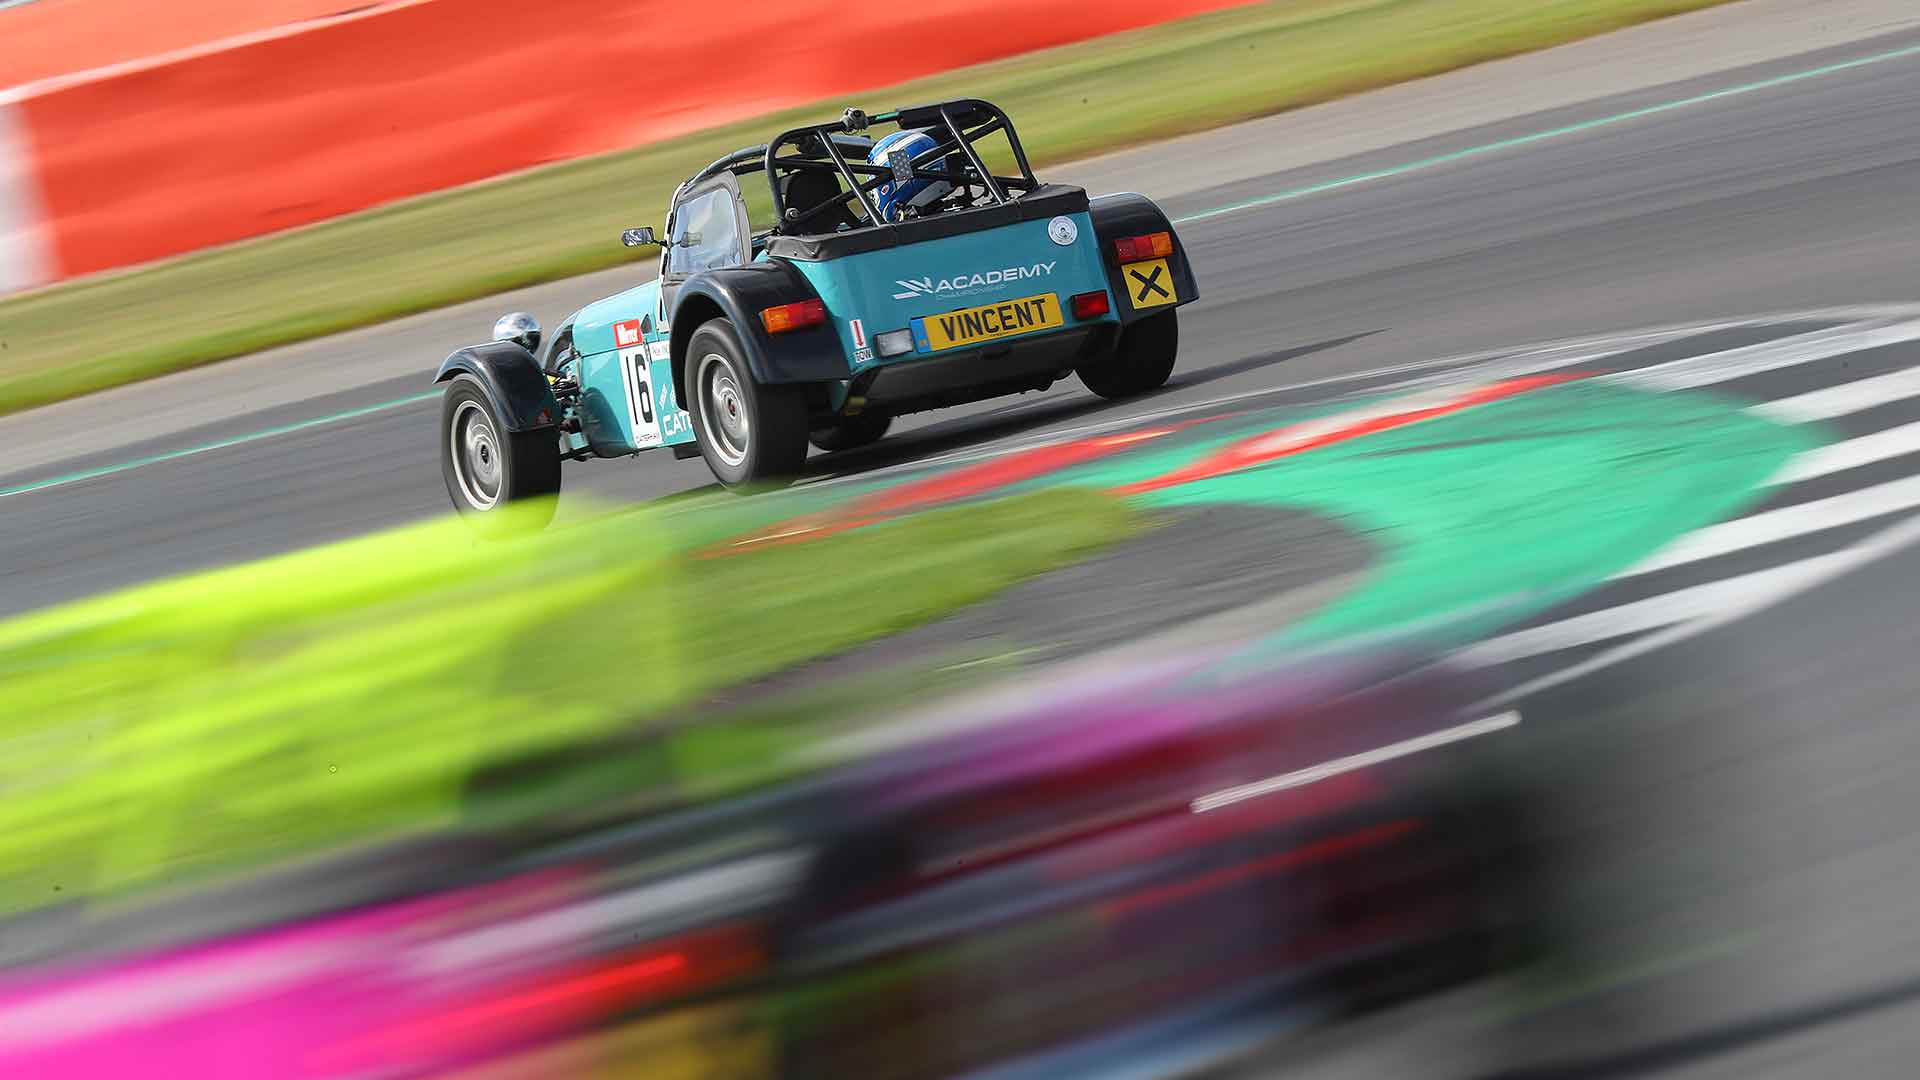 Caterham launches finance deal to go racing for £299 a month